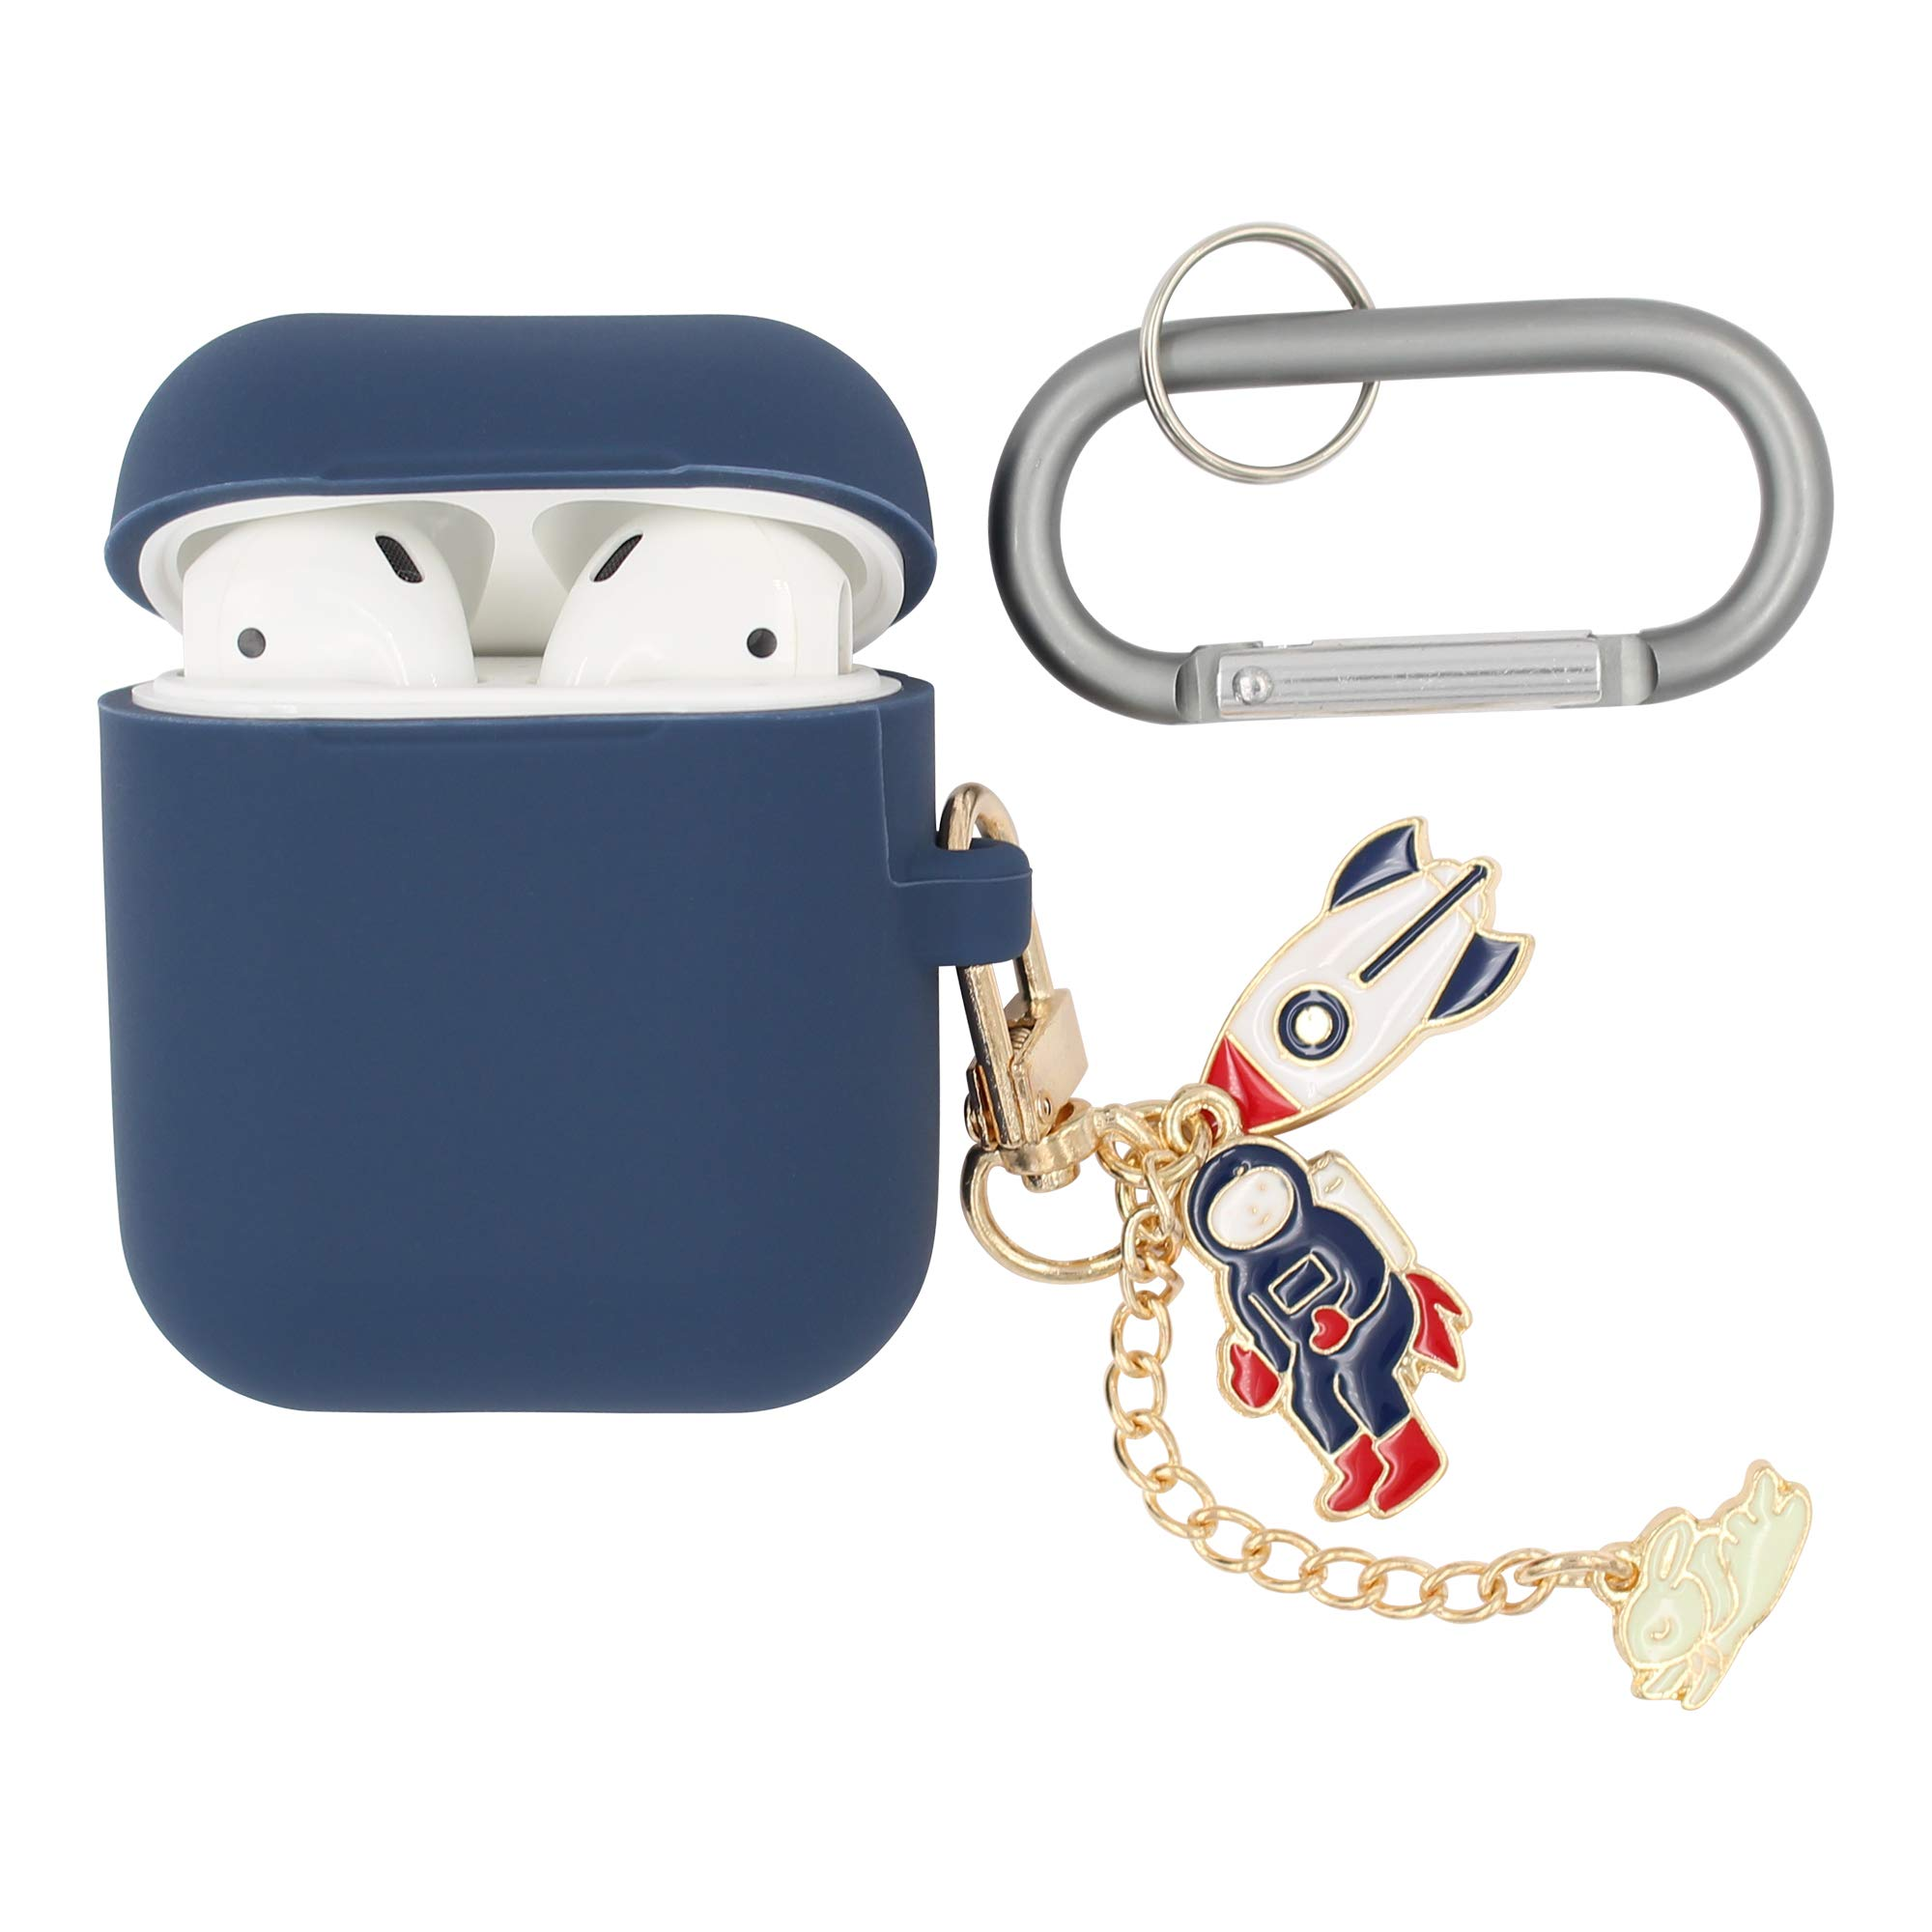 REAL SIC Premium Silicone AirPod Case Keychain with Carabiner - Compatible AirPods Keychain Protective Case - Colorful Key Fob Cover for Wireless Headphones (Navy Space Ship)